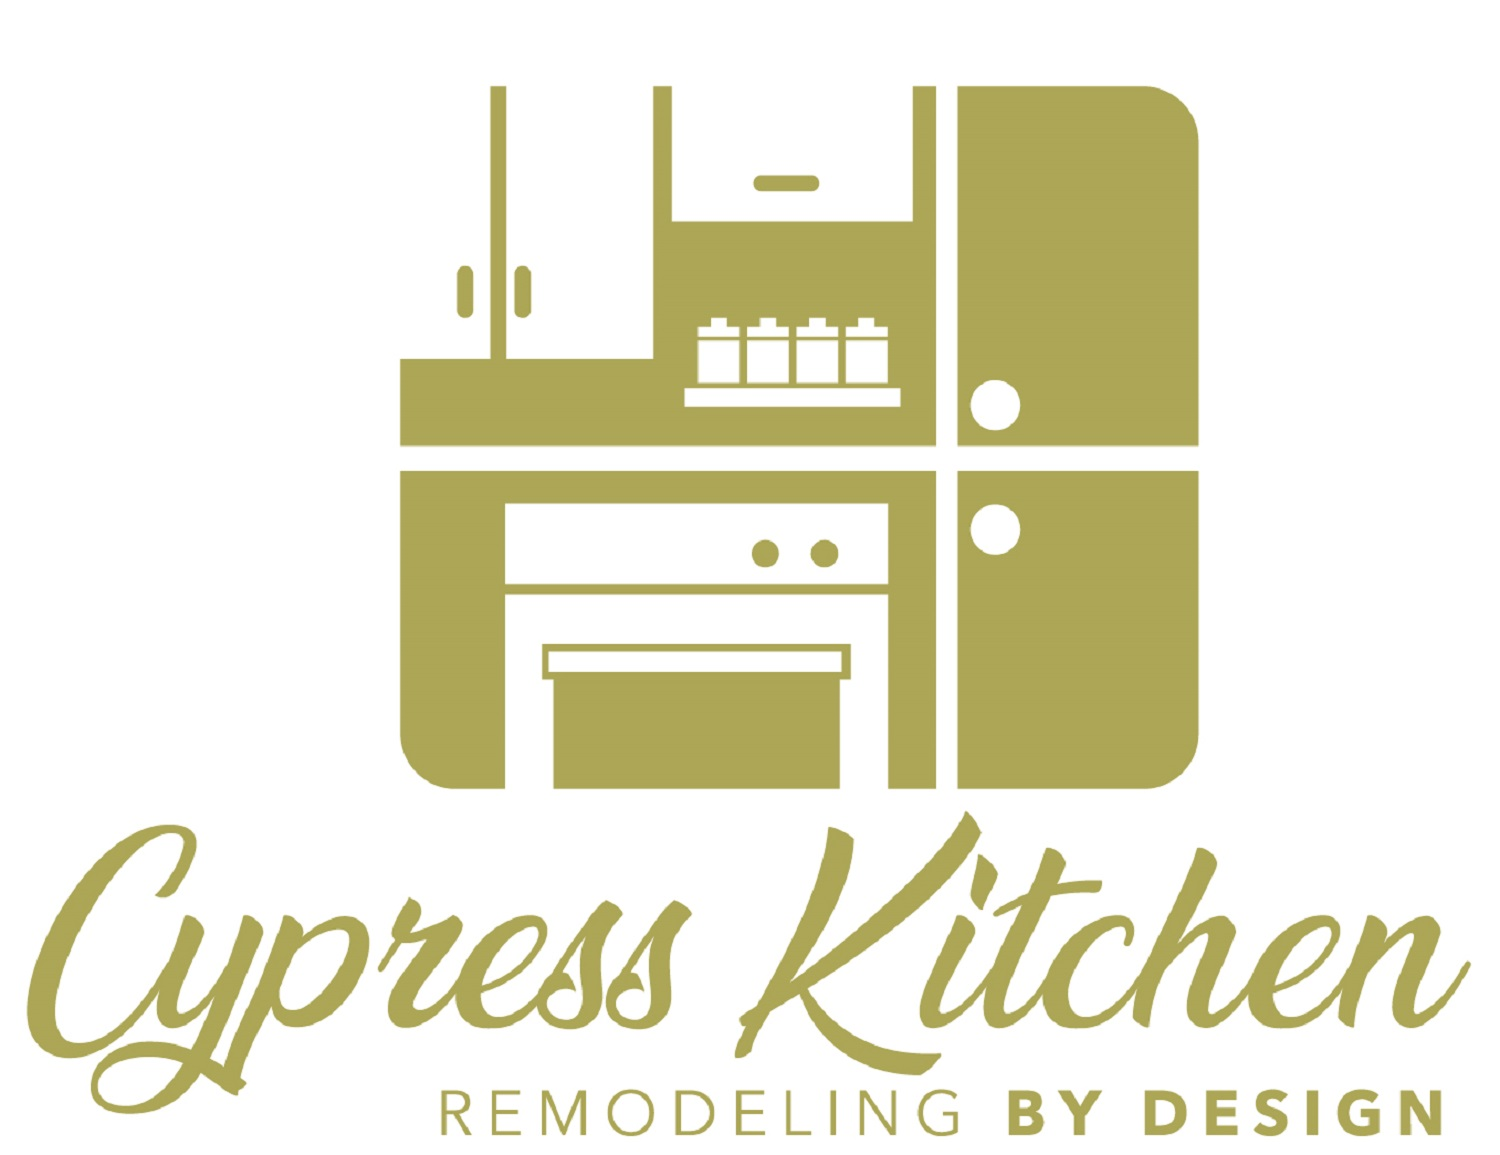 remodeling companies Cypress